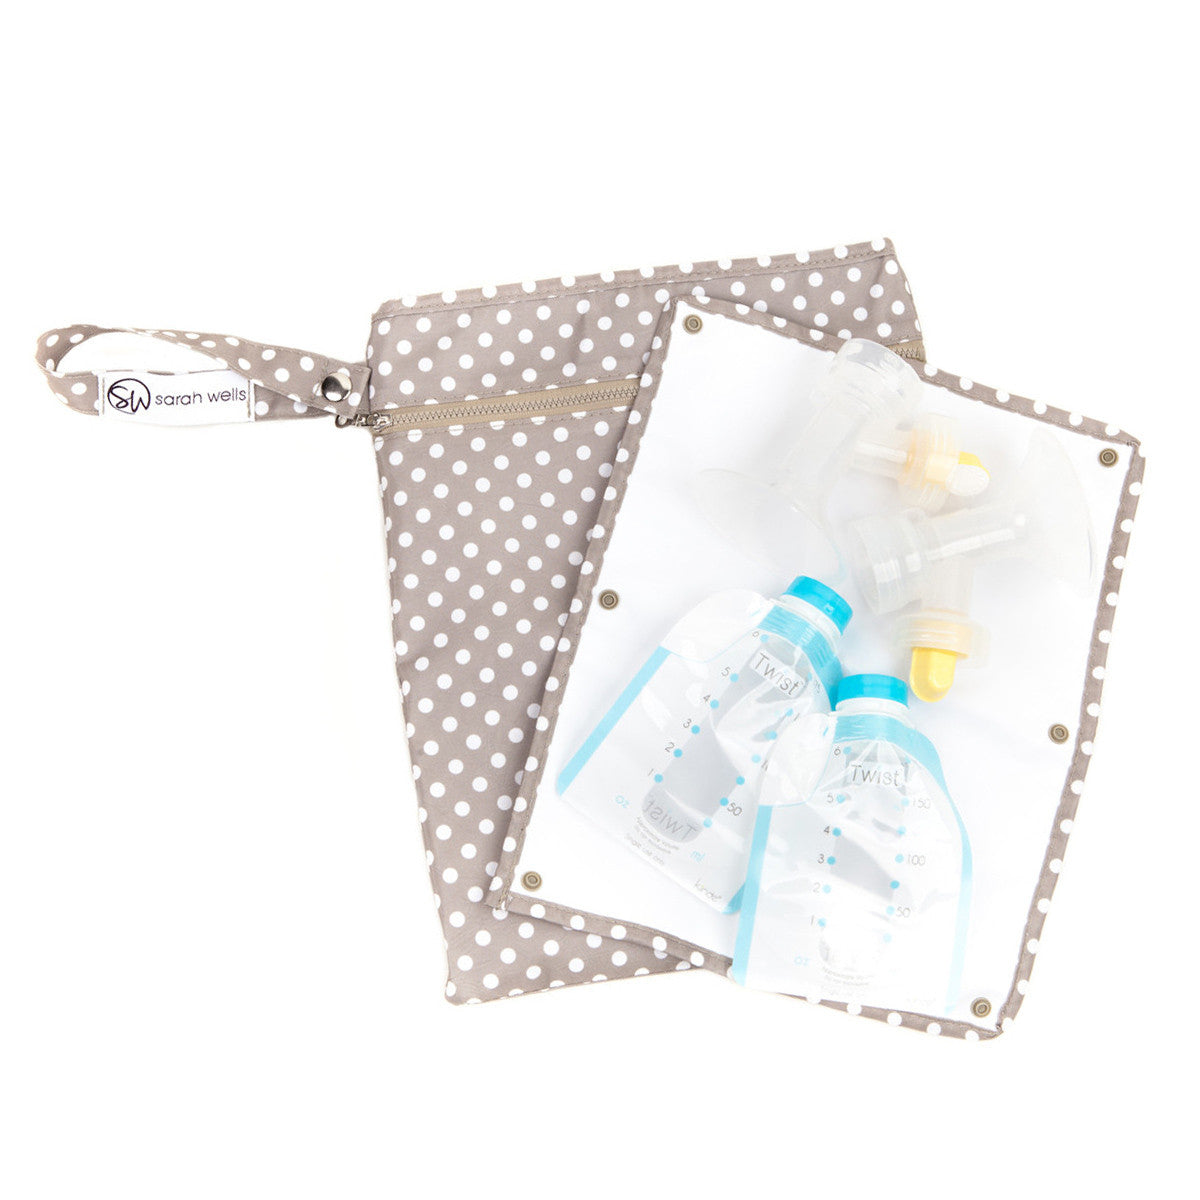 Pumparoo (Greige) - Breast Pump Bags and Pumping Accessories from Sarah Wells Bags